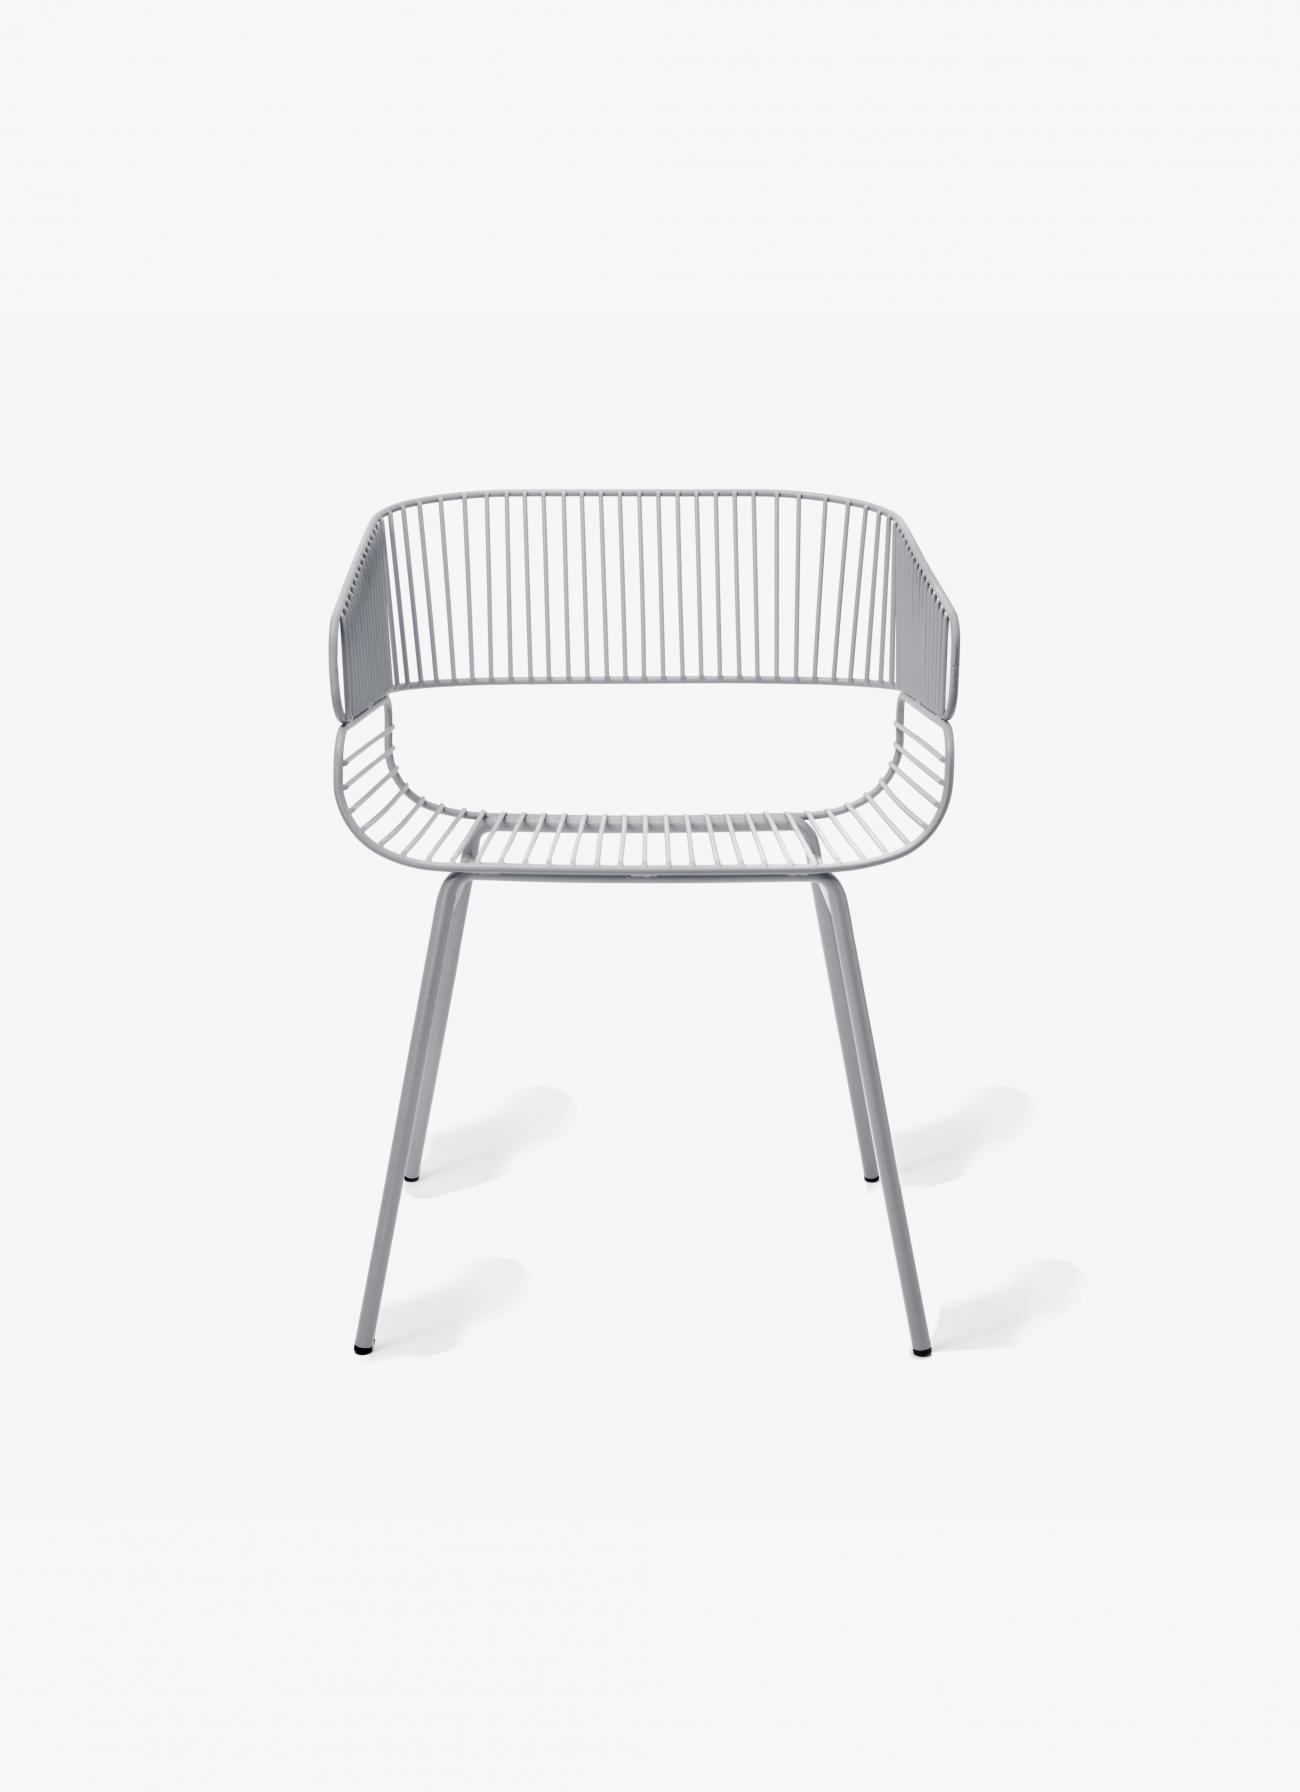 Petite Friture - Trame Chair - grey